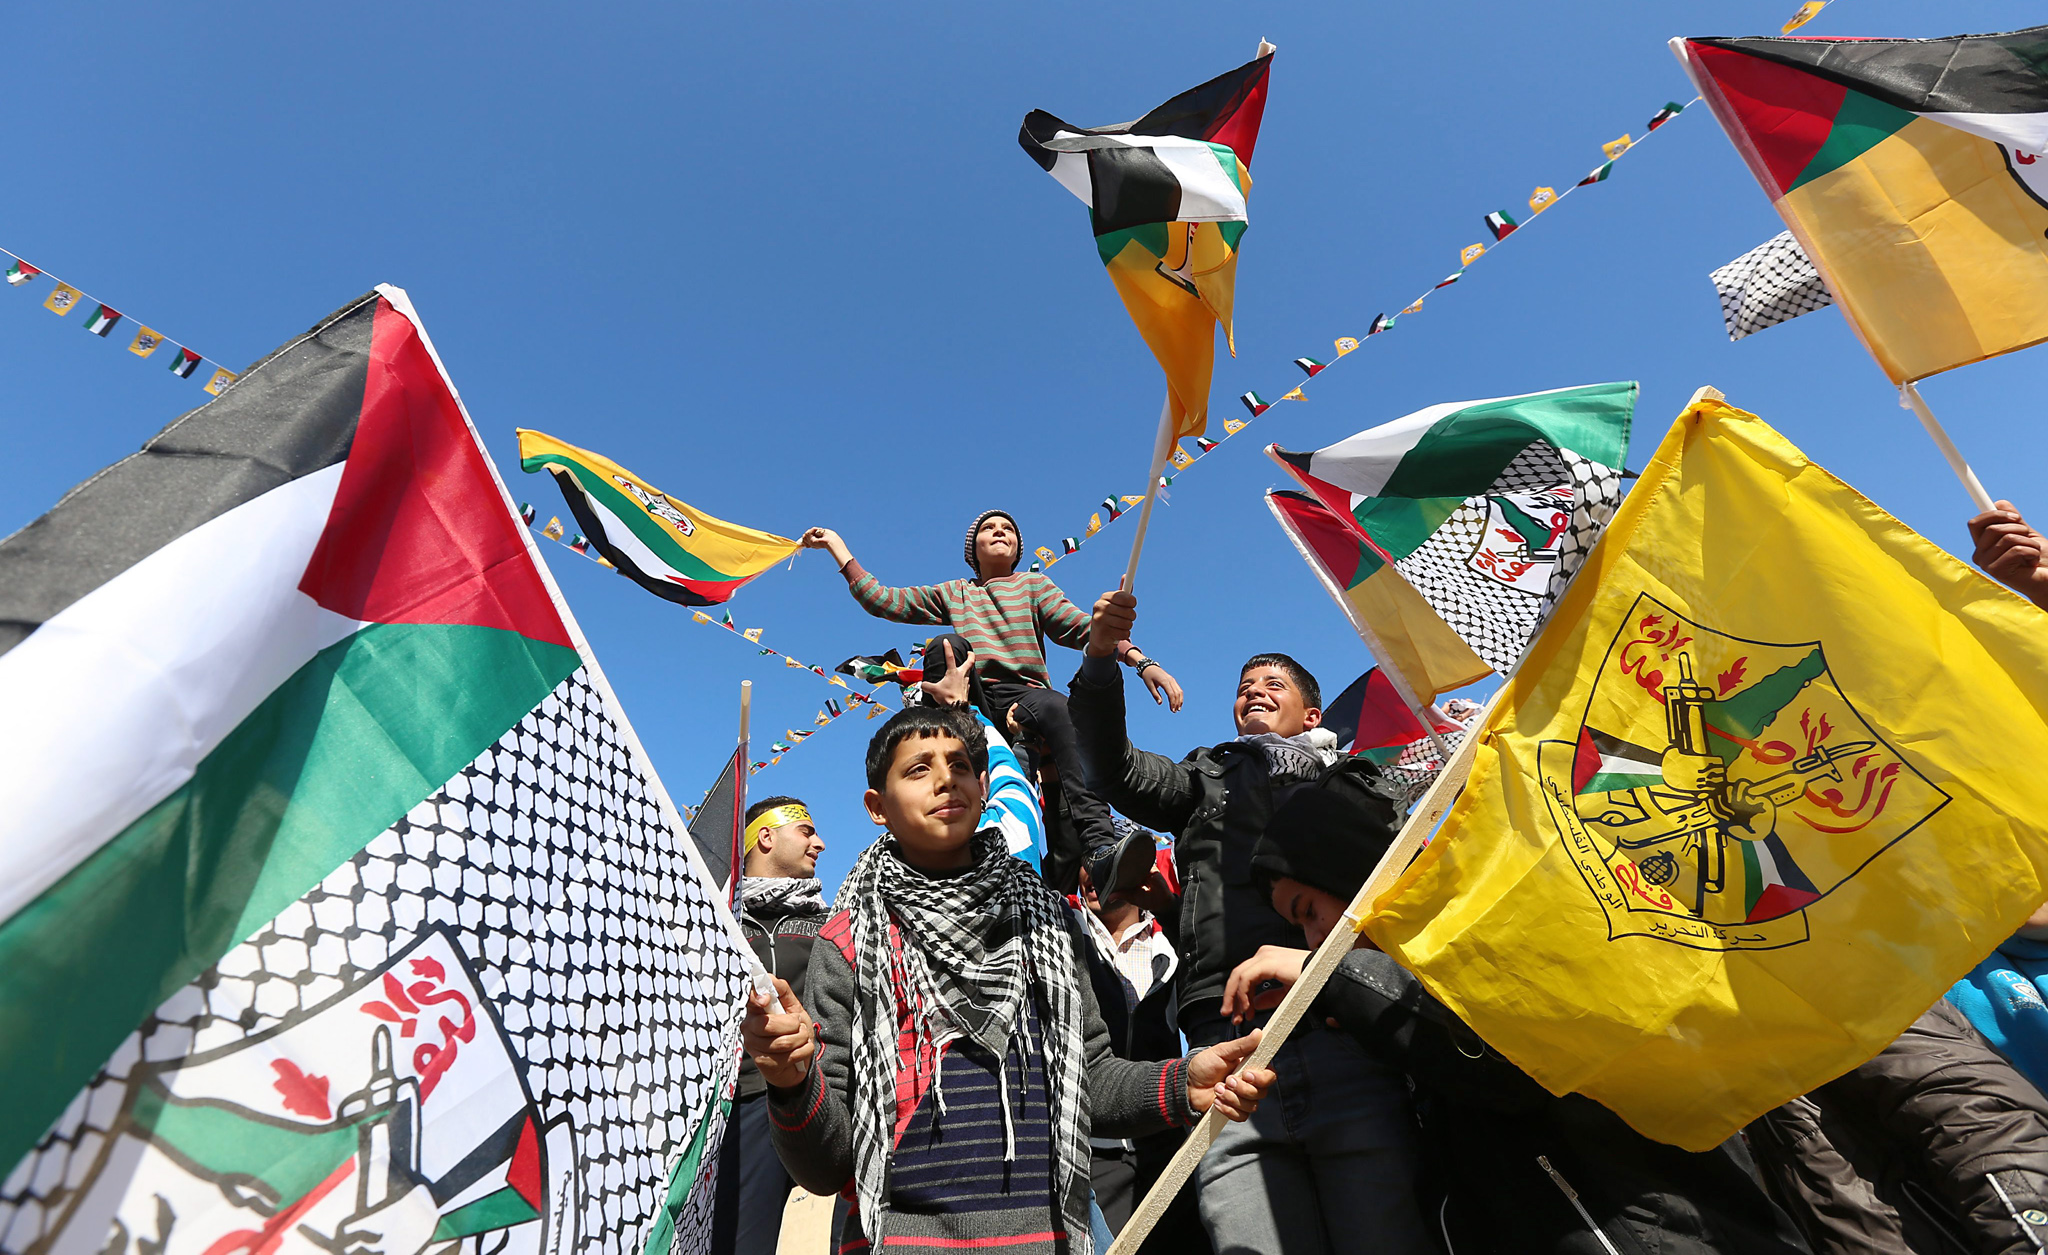 49th anniversary of the formation of the Fatah movement...epa04006024 Palestinians wave Palestinian flags during a rally to mark  the 49th anniversary of the formation of the Fatah movement in the West Bank City of  Nablus  , 02 January 2014.